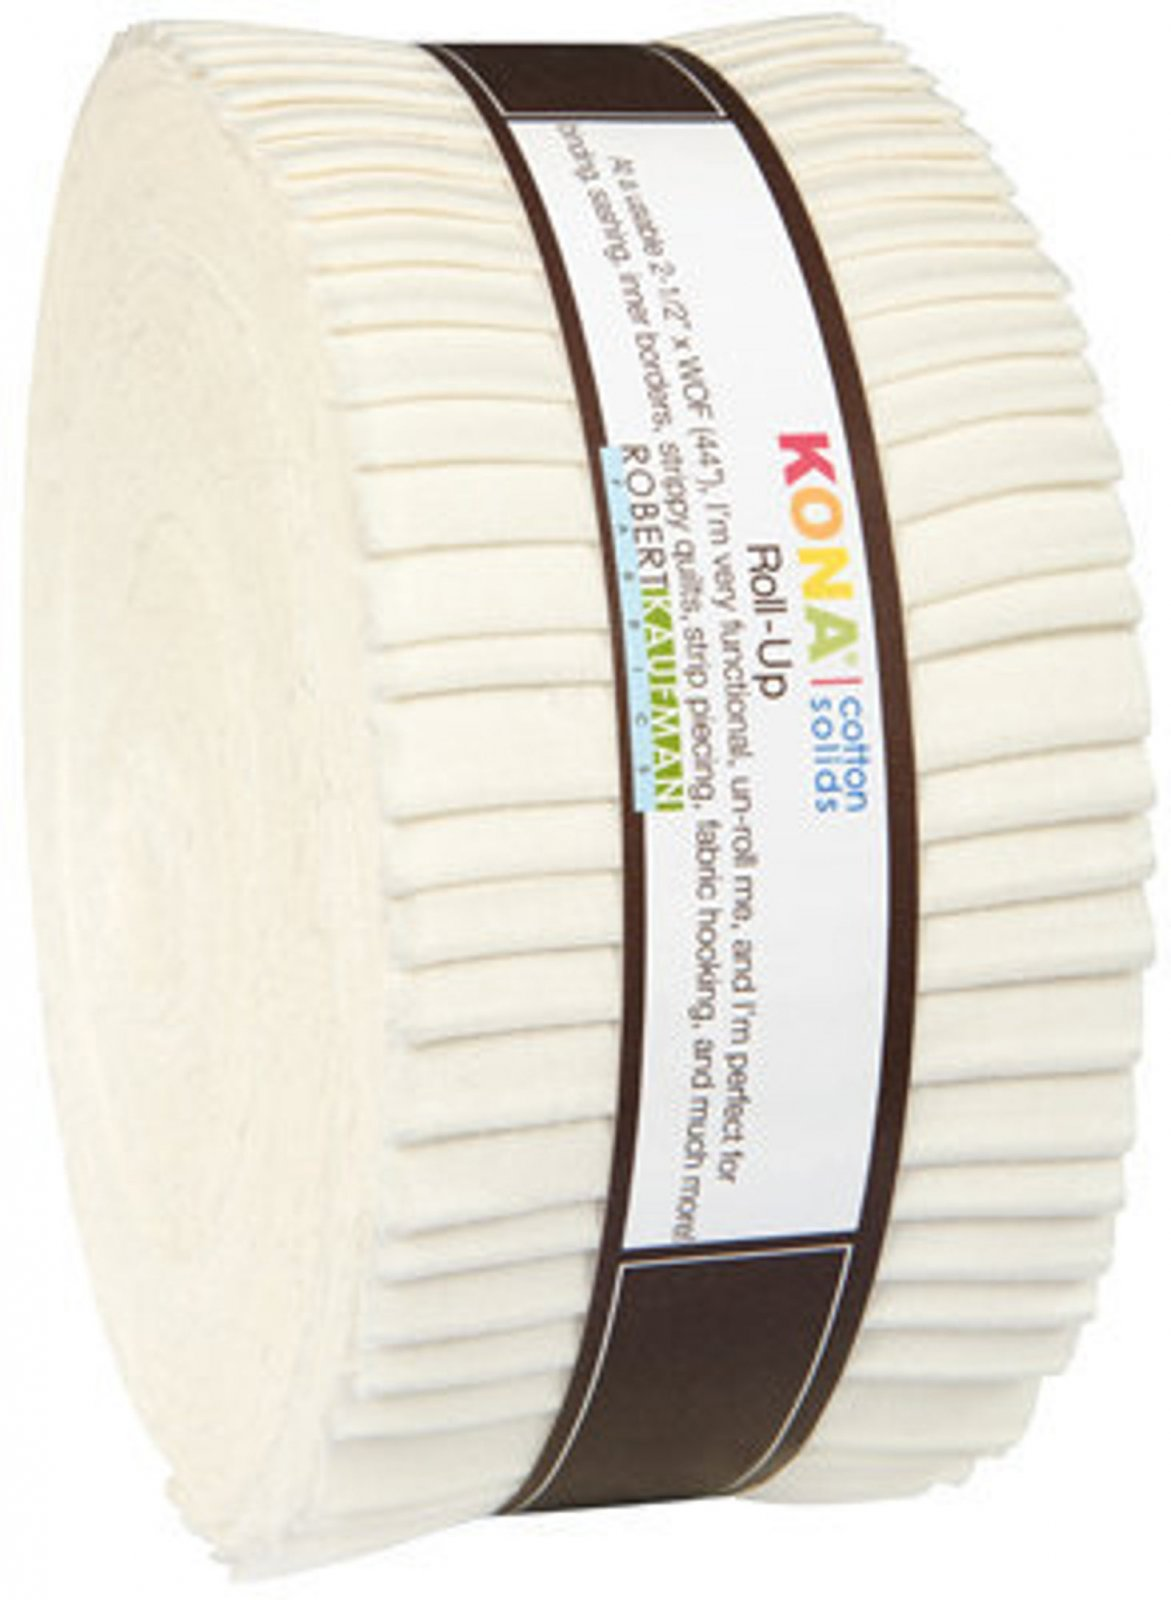 2 1/2 strips Roll Up Kona Cotton Solids - Snow, 40 pieces